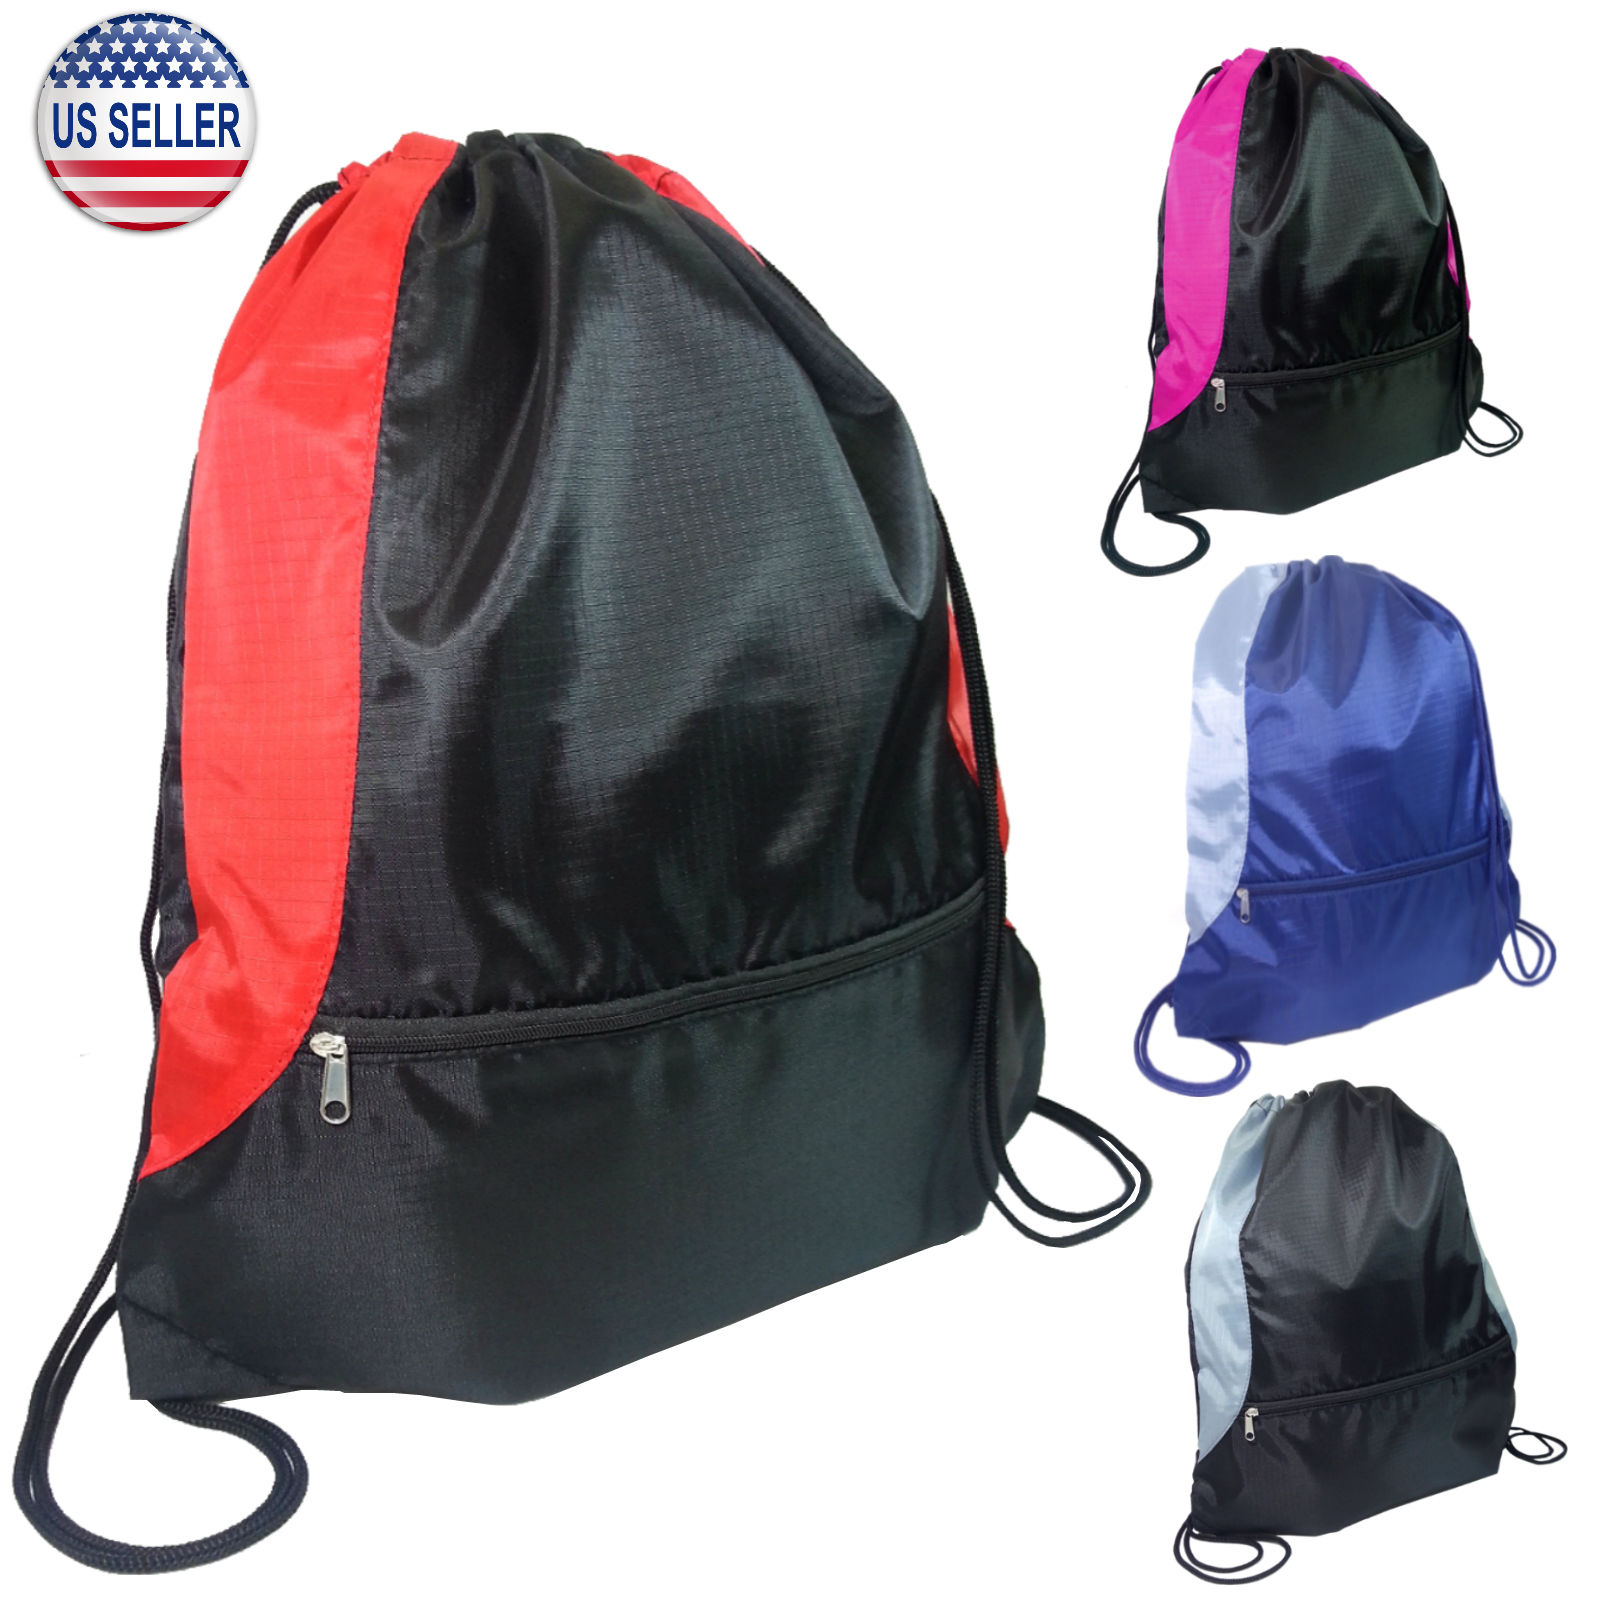 Gym Bag And Backpack: Gym Sack Bag Backpack Drawstring Closure With Zipper Front